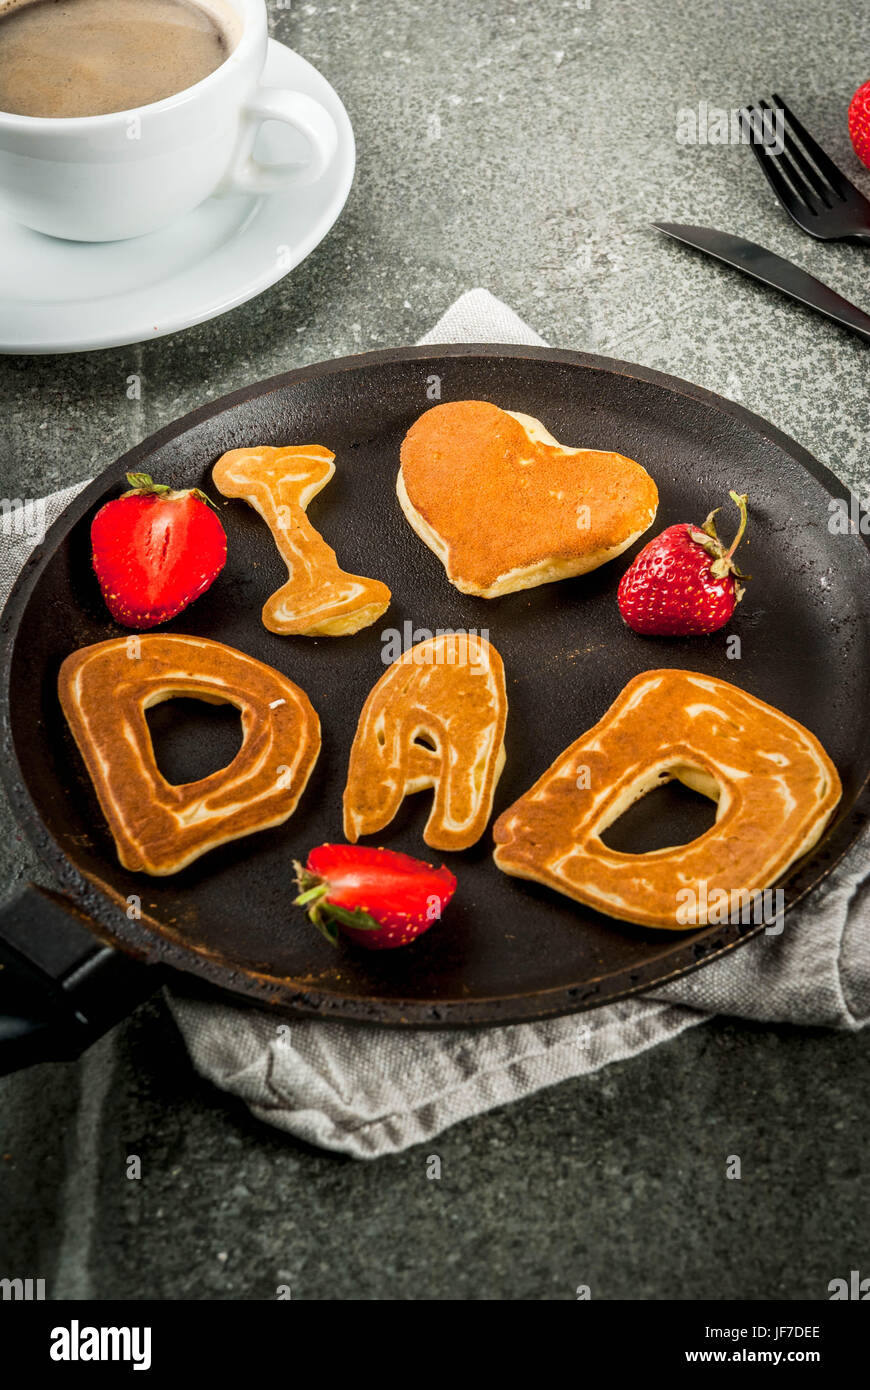 Celebrating Father's Day. Breakfast. The idea for a hearty and delicious breakfast: pancakes in form of congratulations - Stock Image